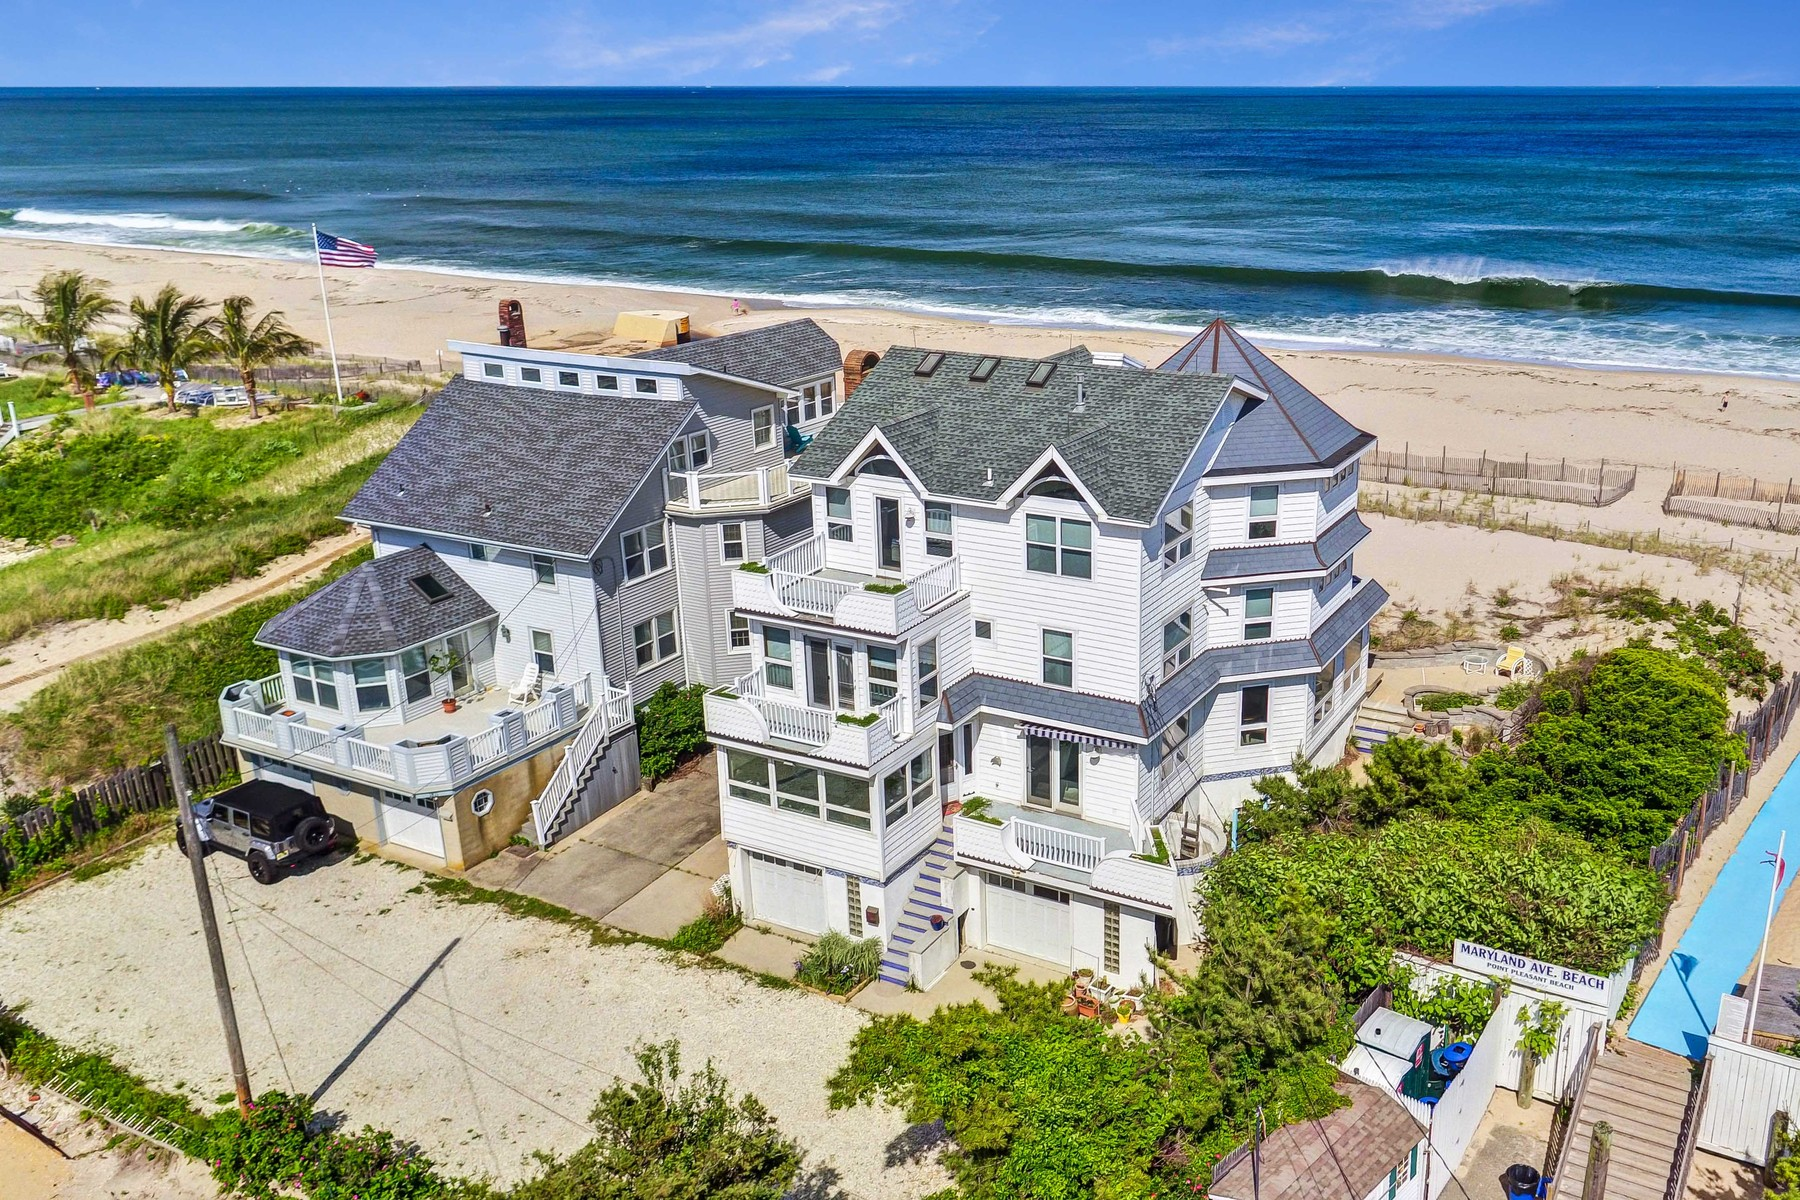 Single Family Home for Sale at Oceanfront Opportunity 1 Maryland Ave, Point Pleasant Beach, New Jersey, 08742 United States